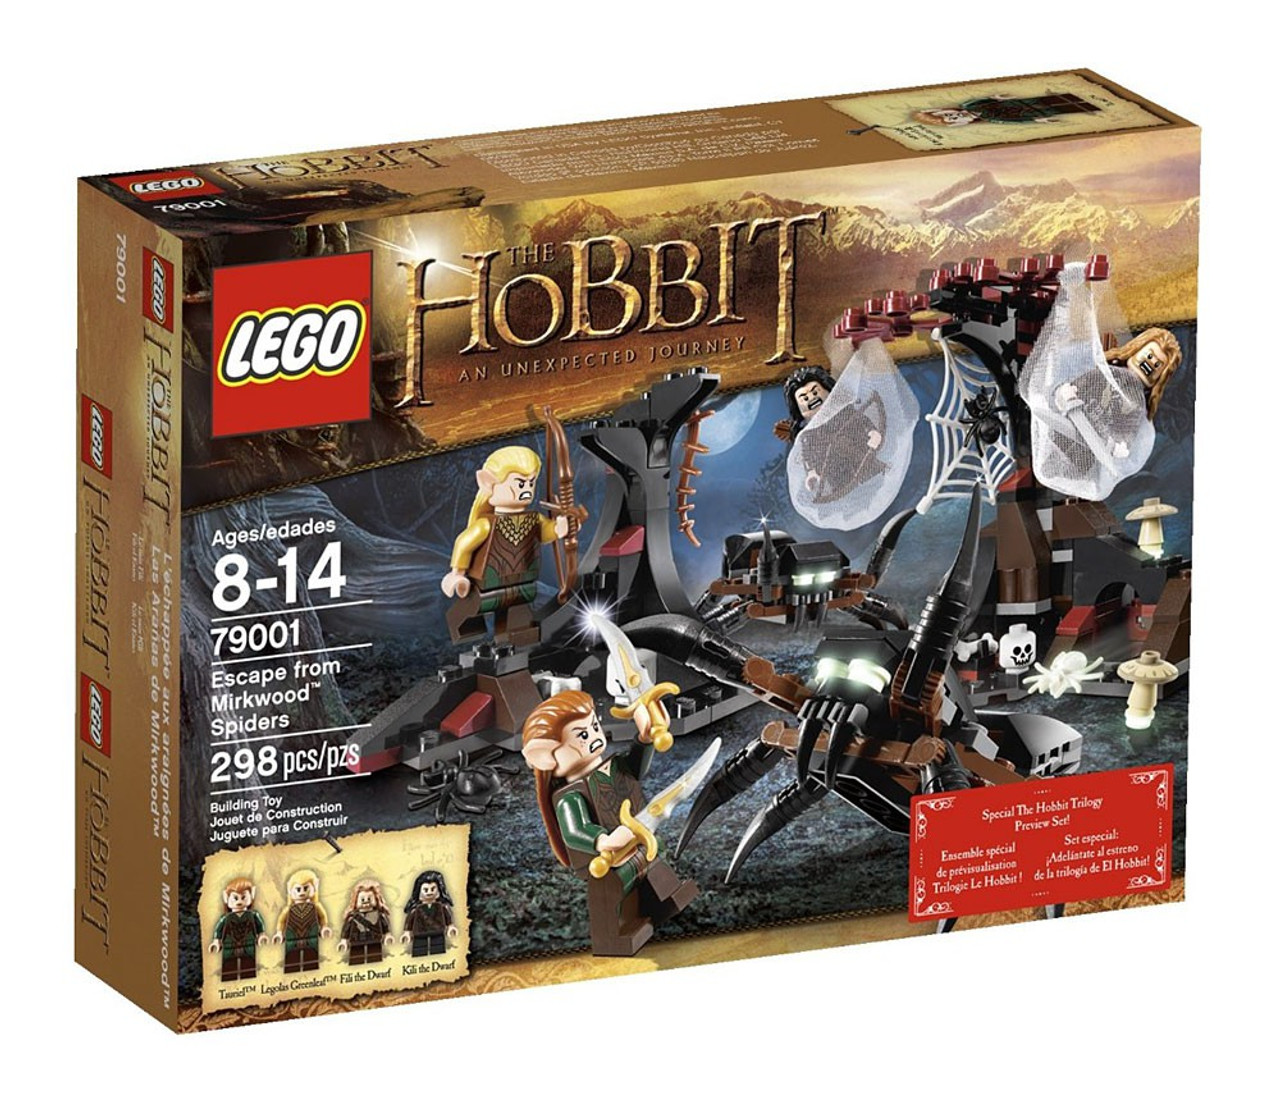 LEGO The Hobbit Escape from Mirkwood Spiders Set #79001